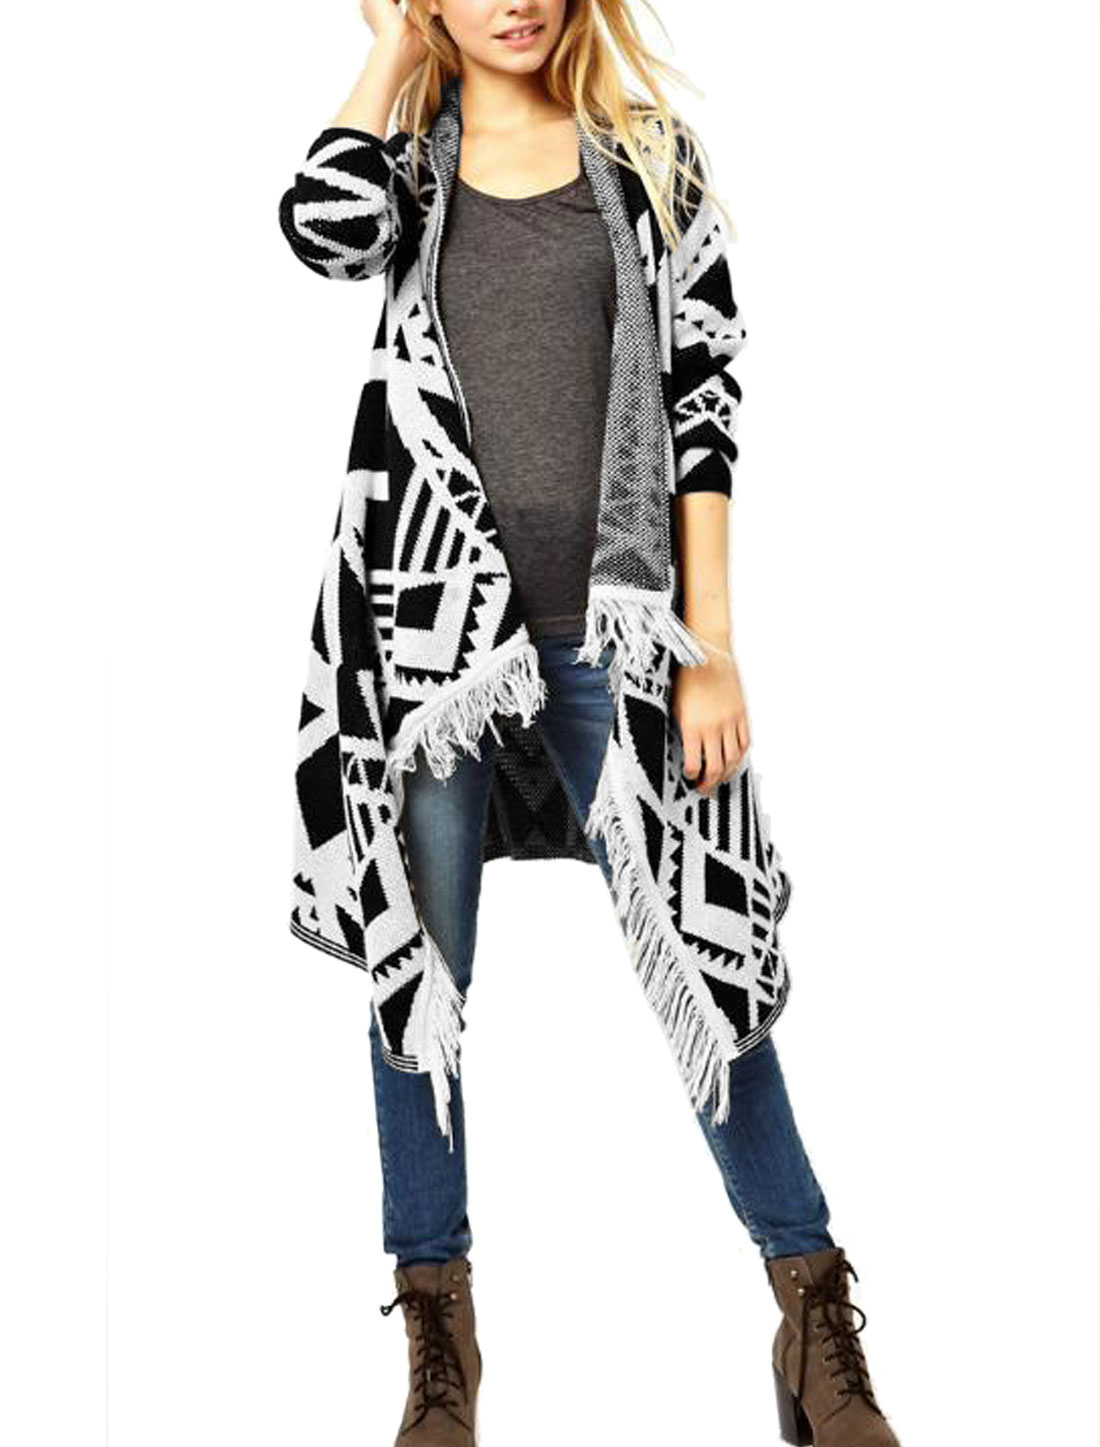 Ladies Beige Black Geometric Prints Asymmetric Hem Front Opening Tunic Cardigan S